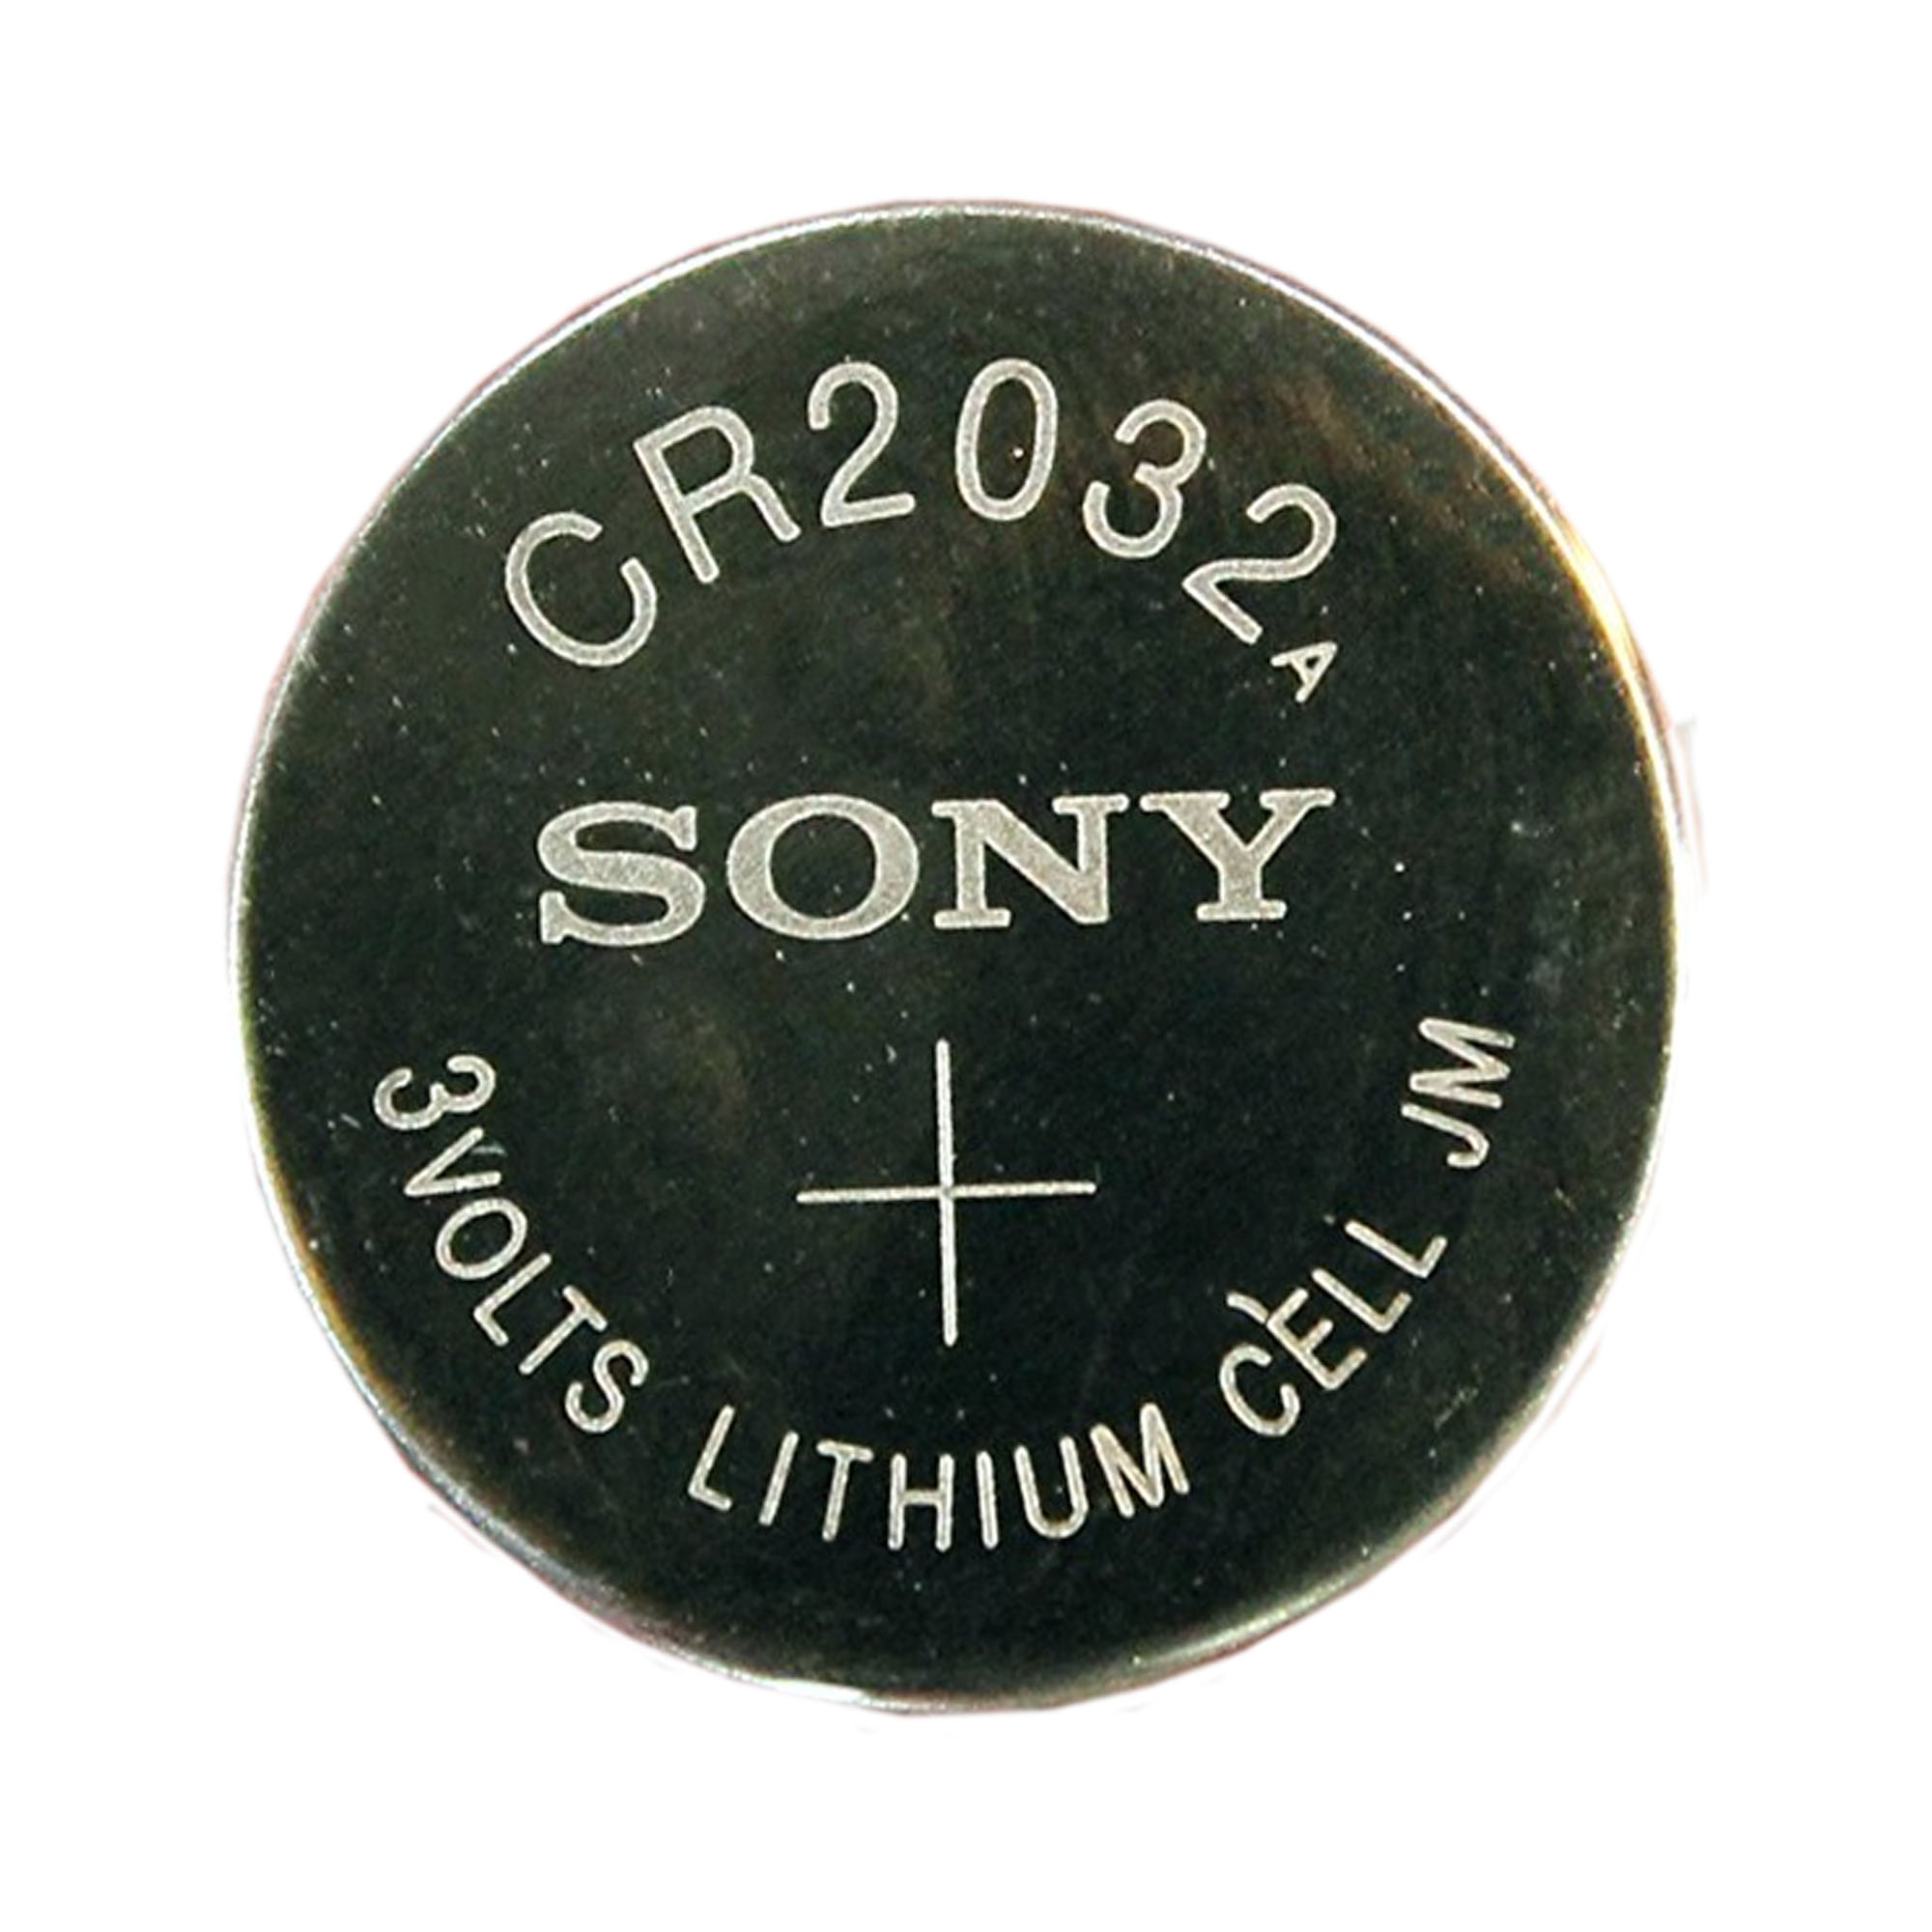 Cr2032 Battery Cr2032 Sony 3 Volt Lithium Coin Cell Battery